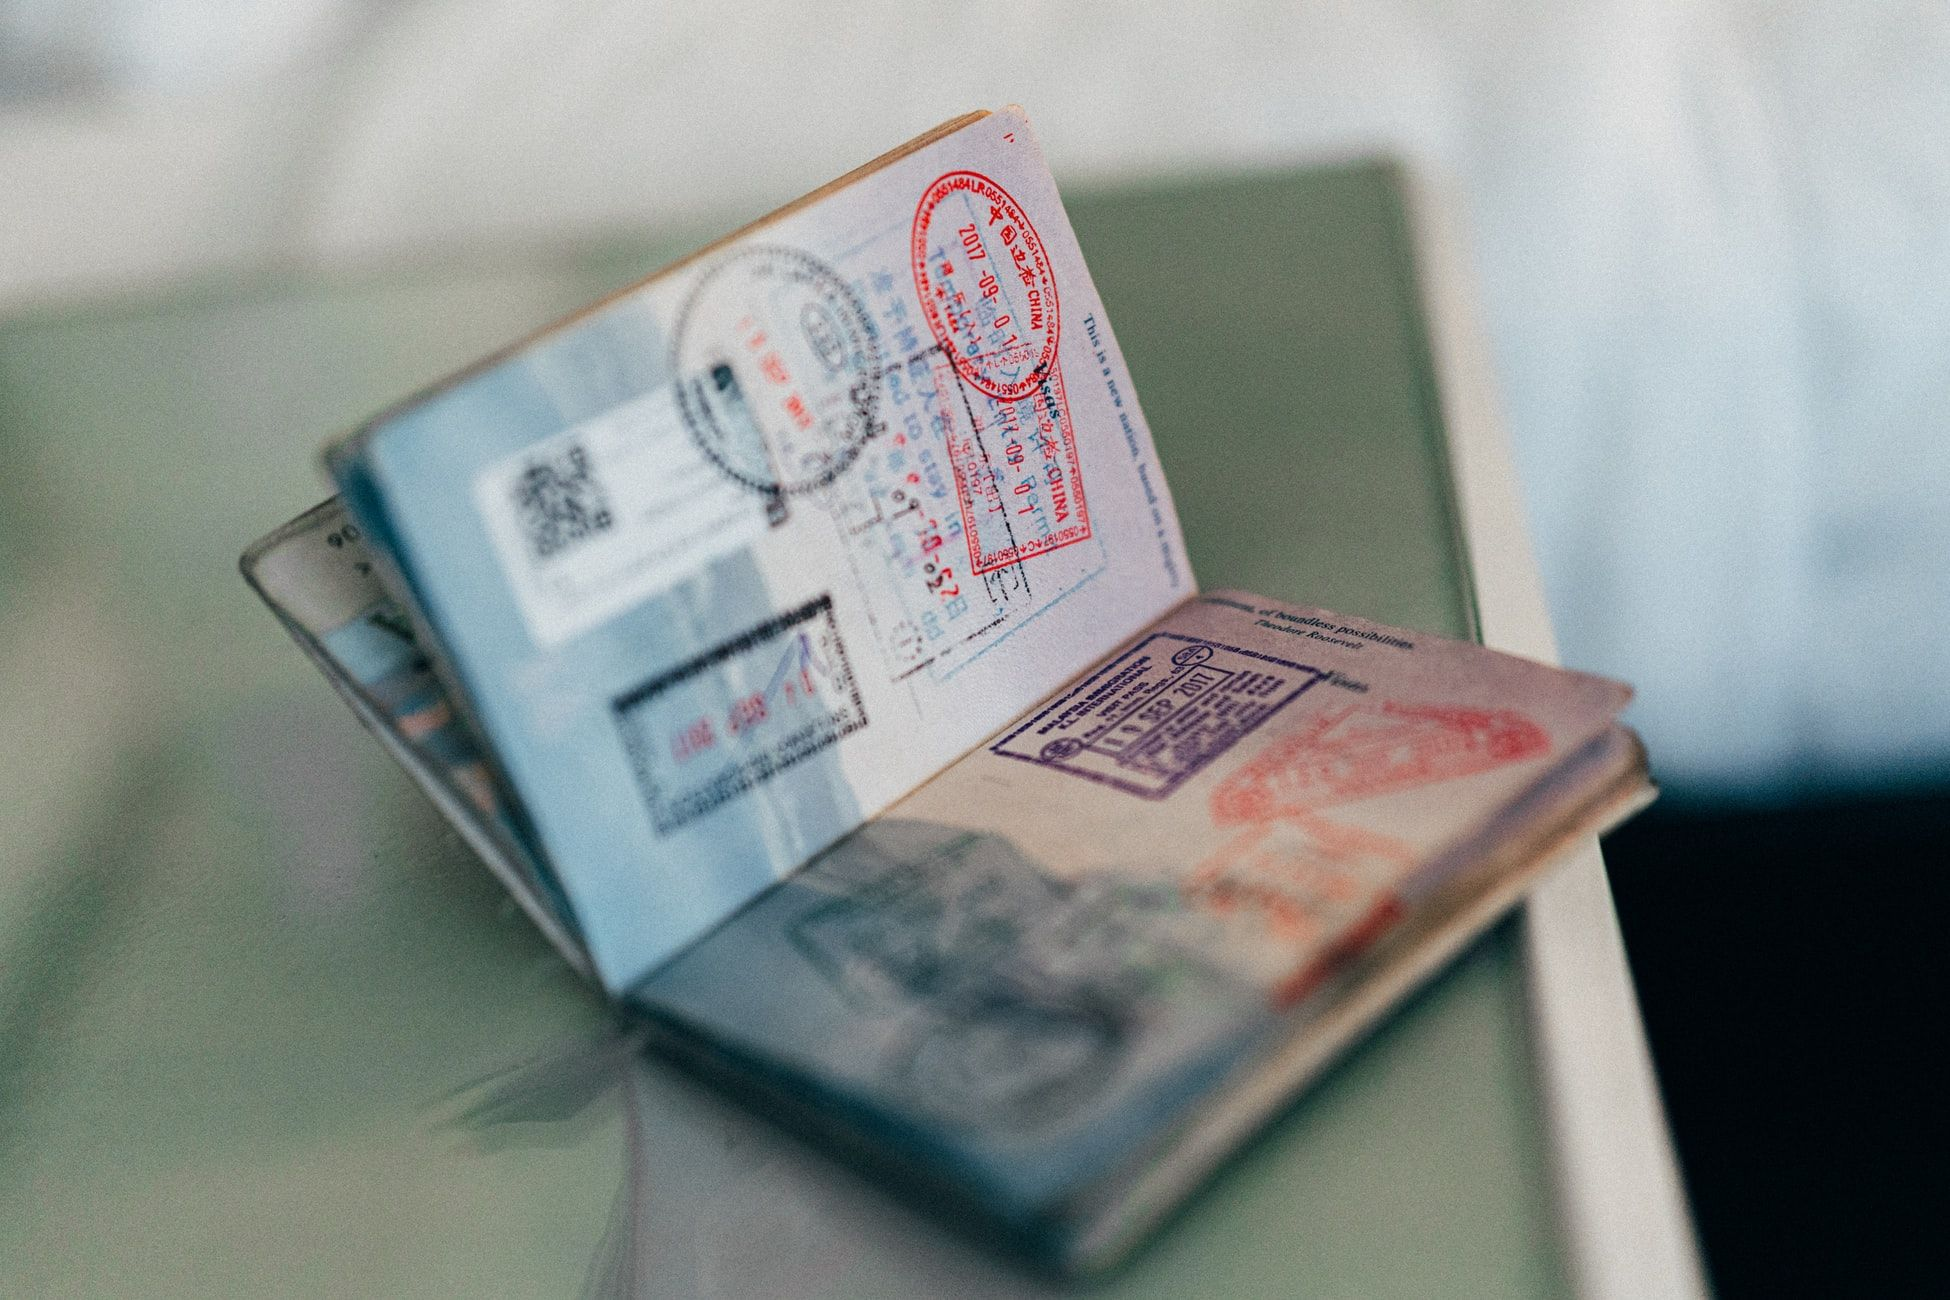 COVID-19 News 2021: Are Health Passports Going To Be The New Norm In Travel?